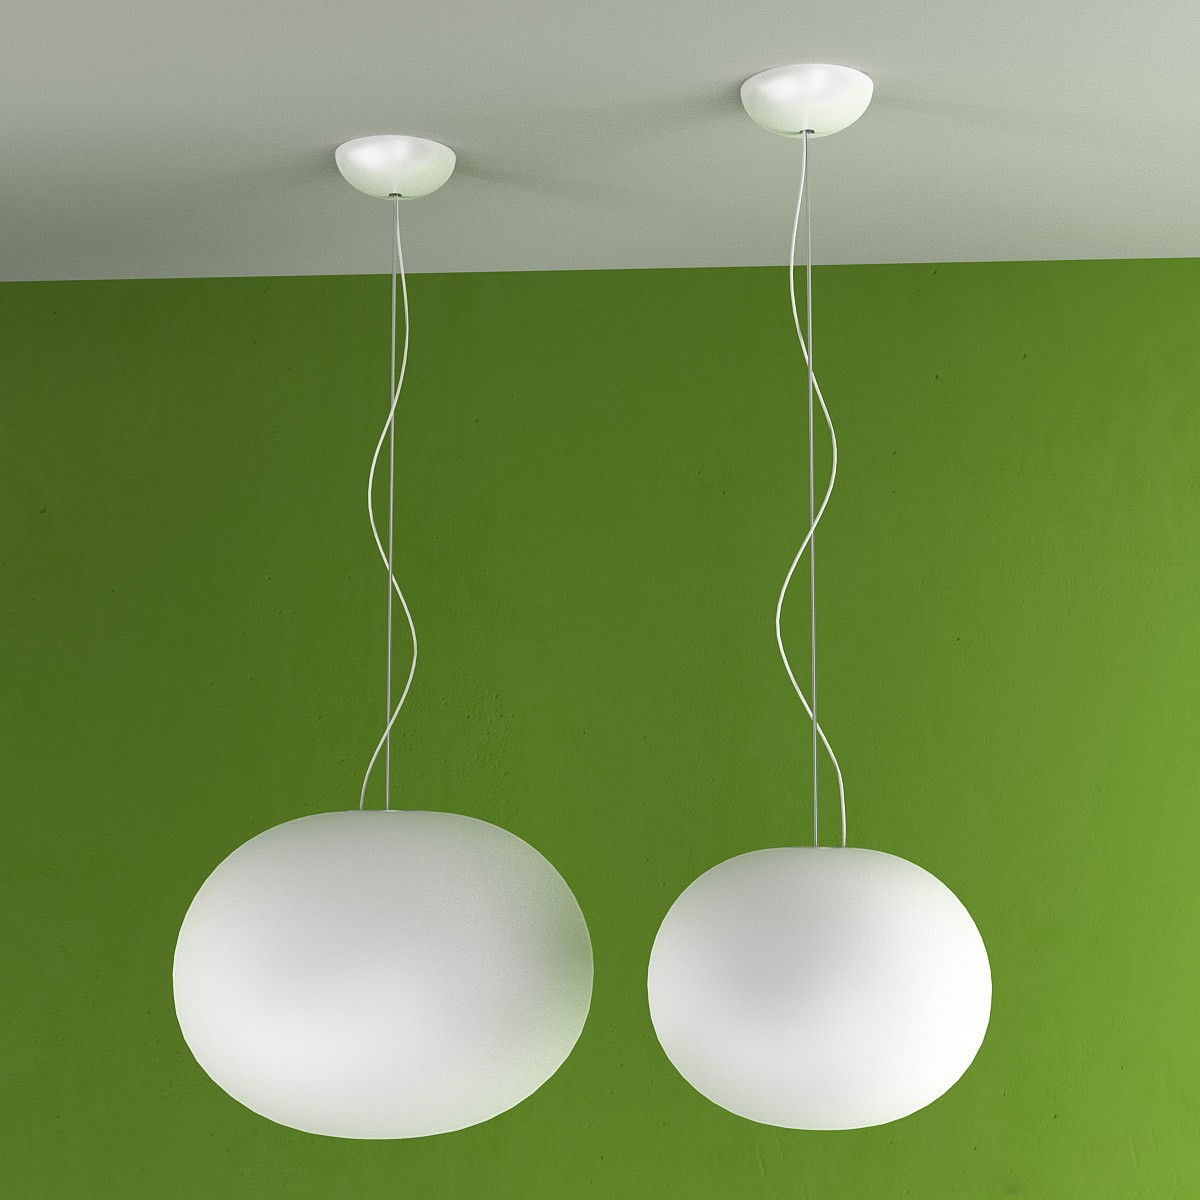 flos glo ball s2 suspension lamp. Black Bedroom Furniture Sets. Home Design Ideas